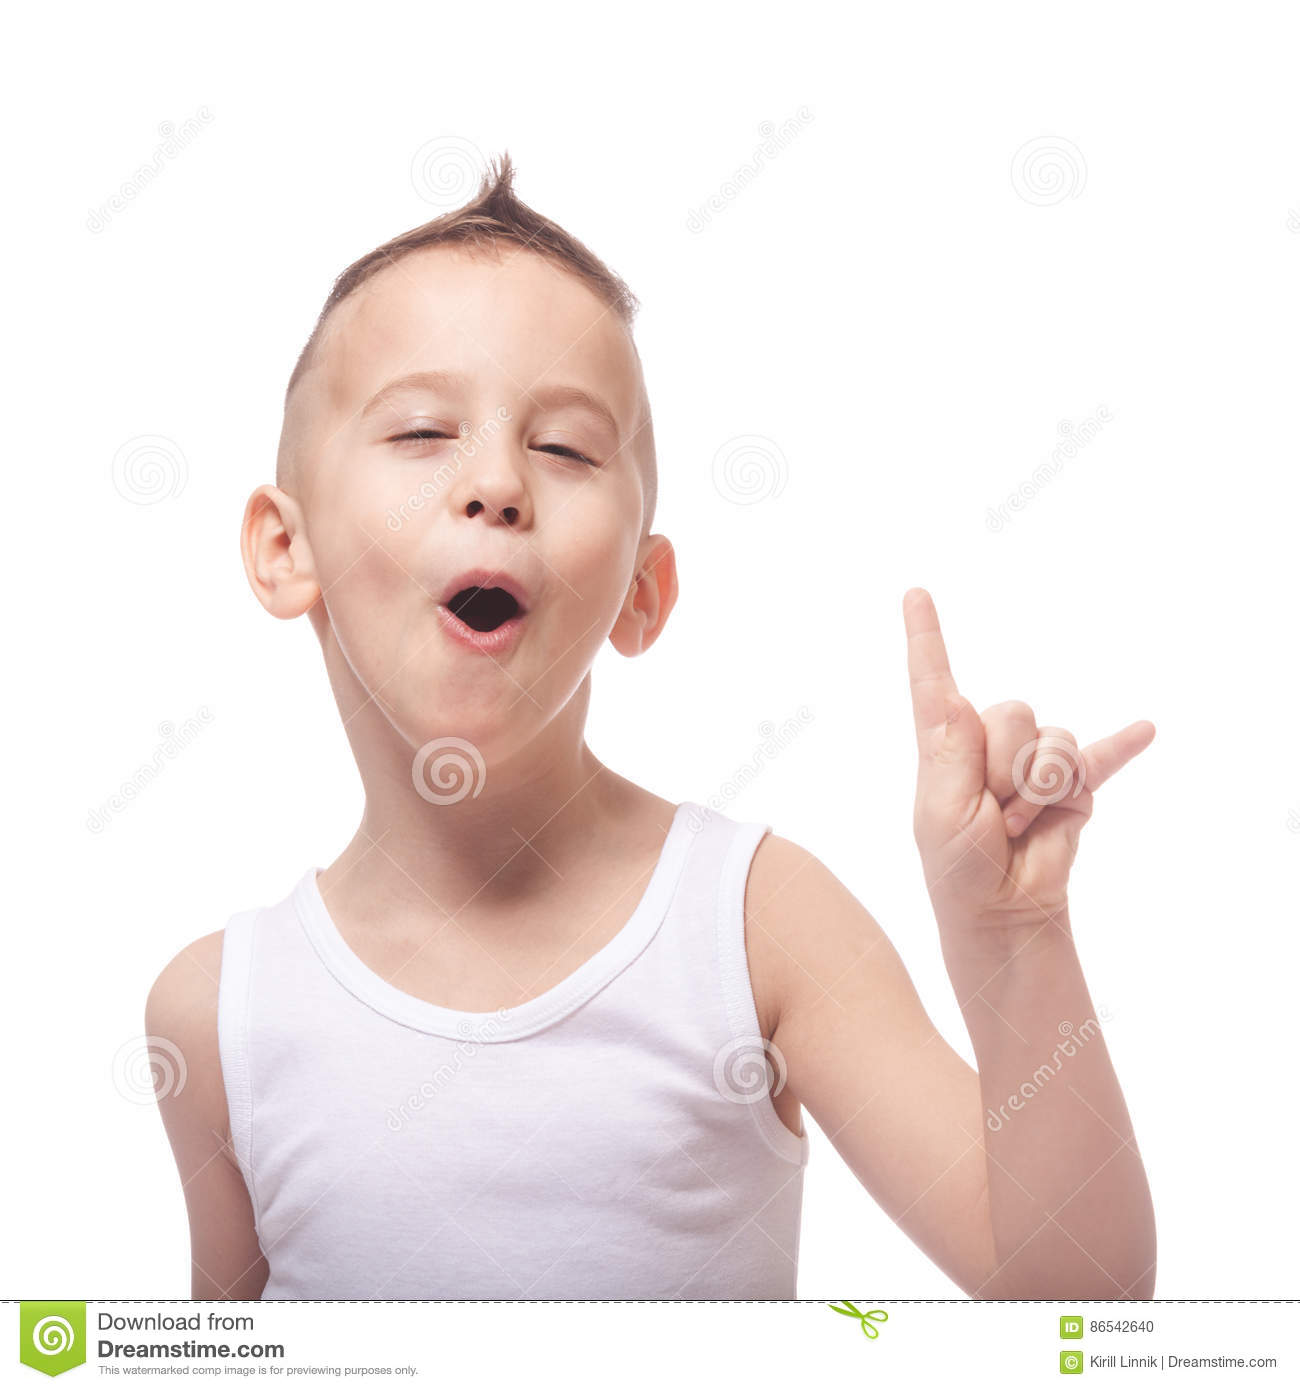 Download Funny rocking kid stock photo. Image of cheerful, pretty - 86542640